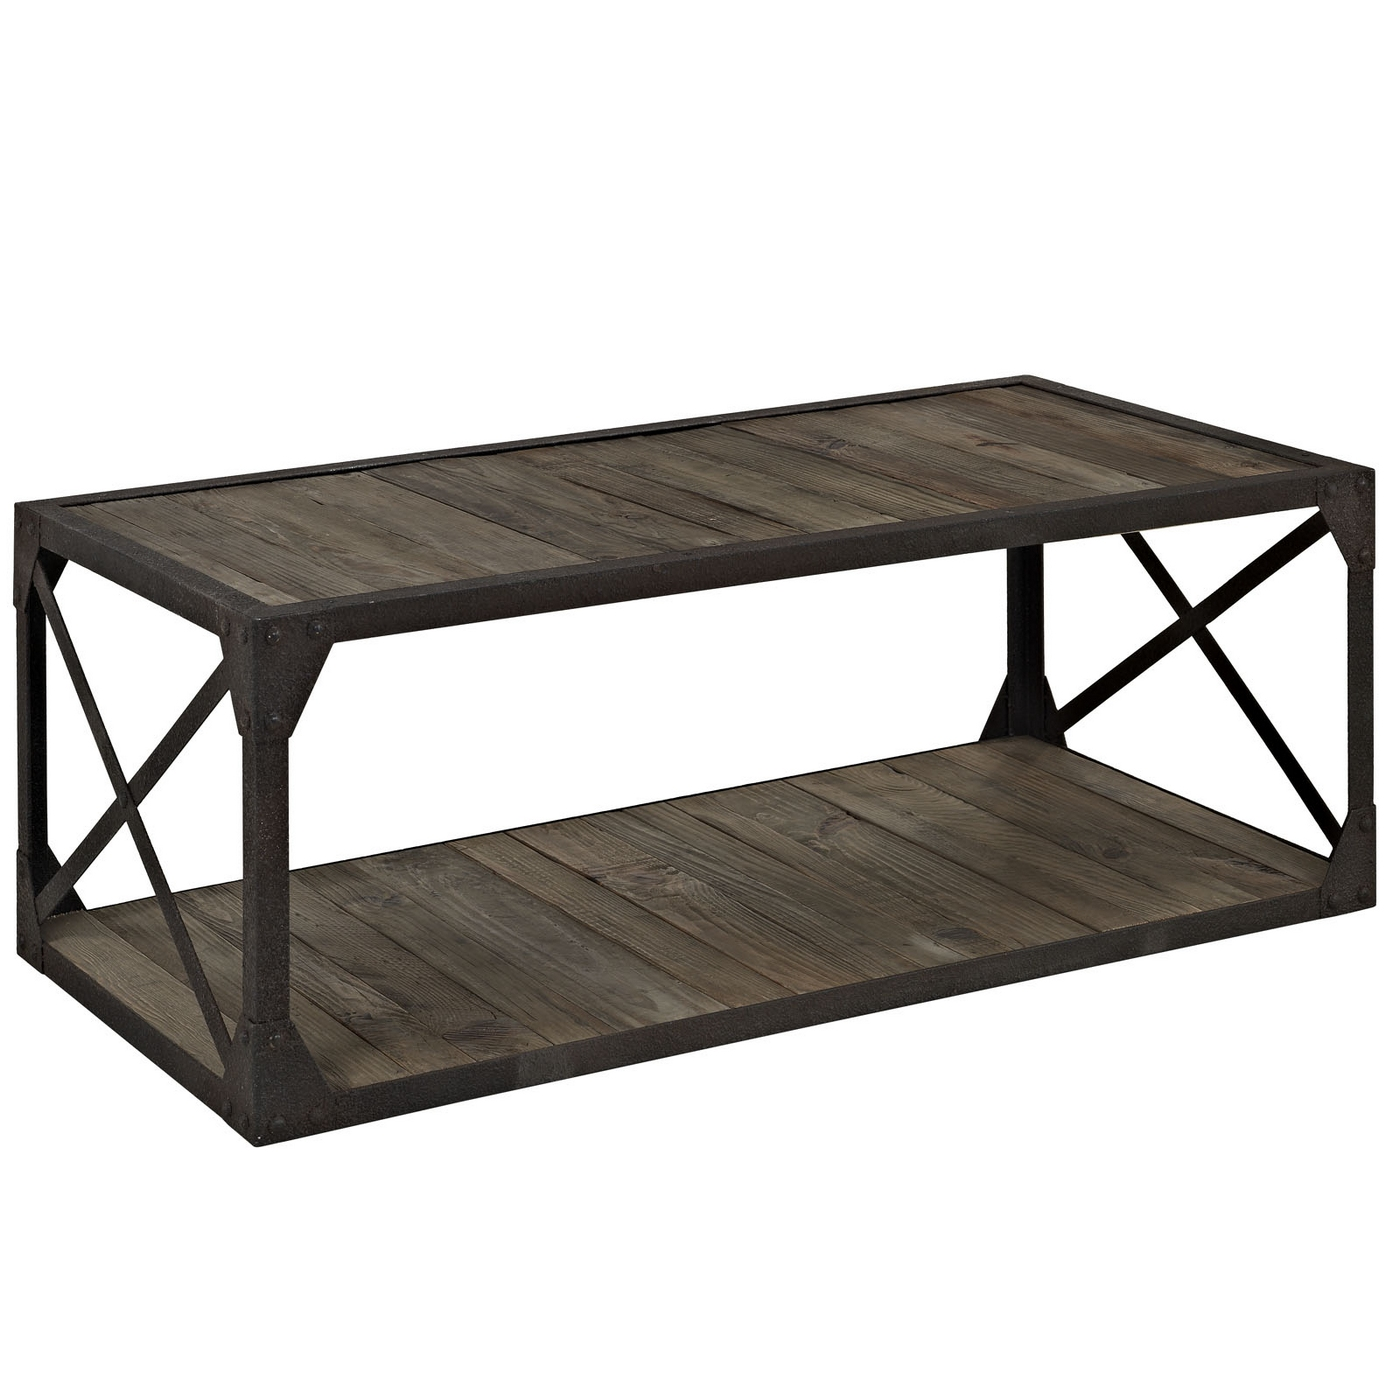 Modern Coffee Table Metal: Basic Industrial Modern Coffee Table With Pine Shelves